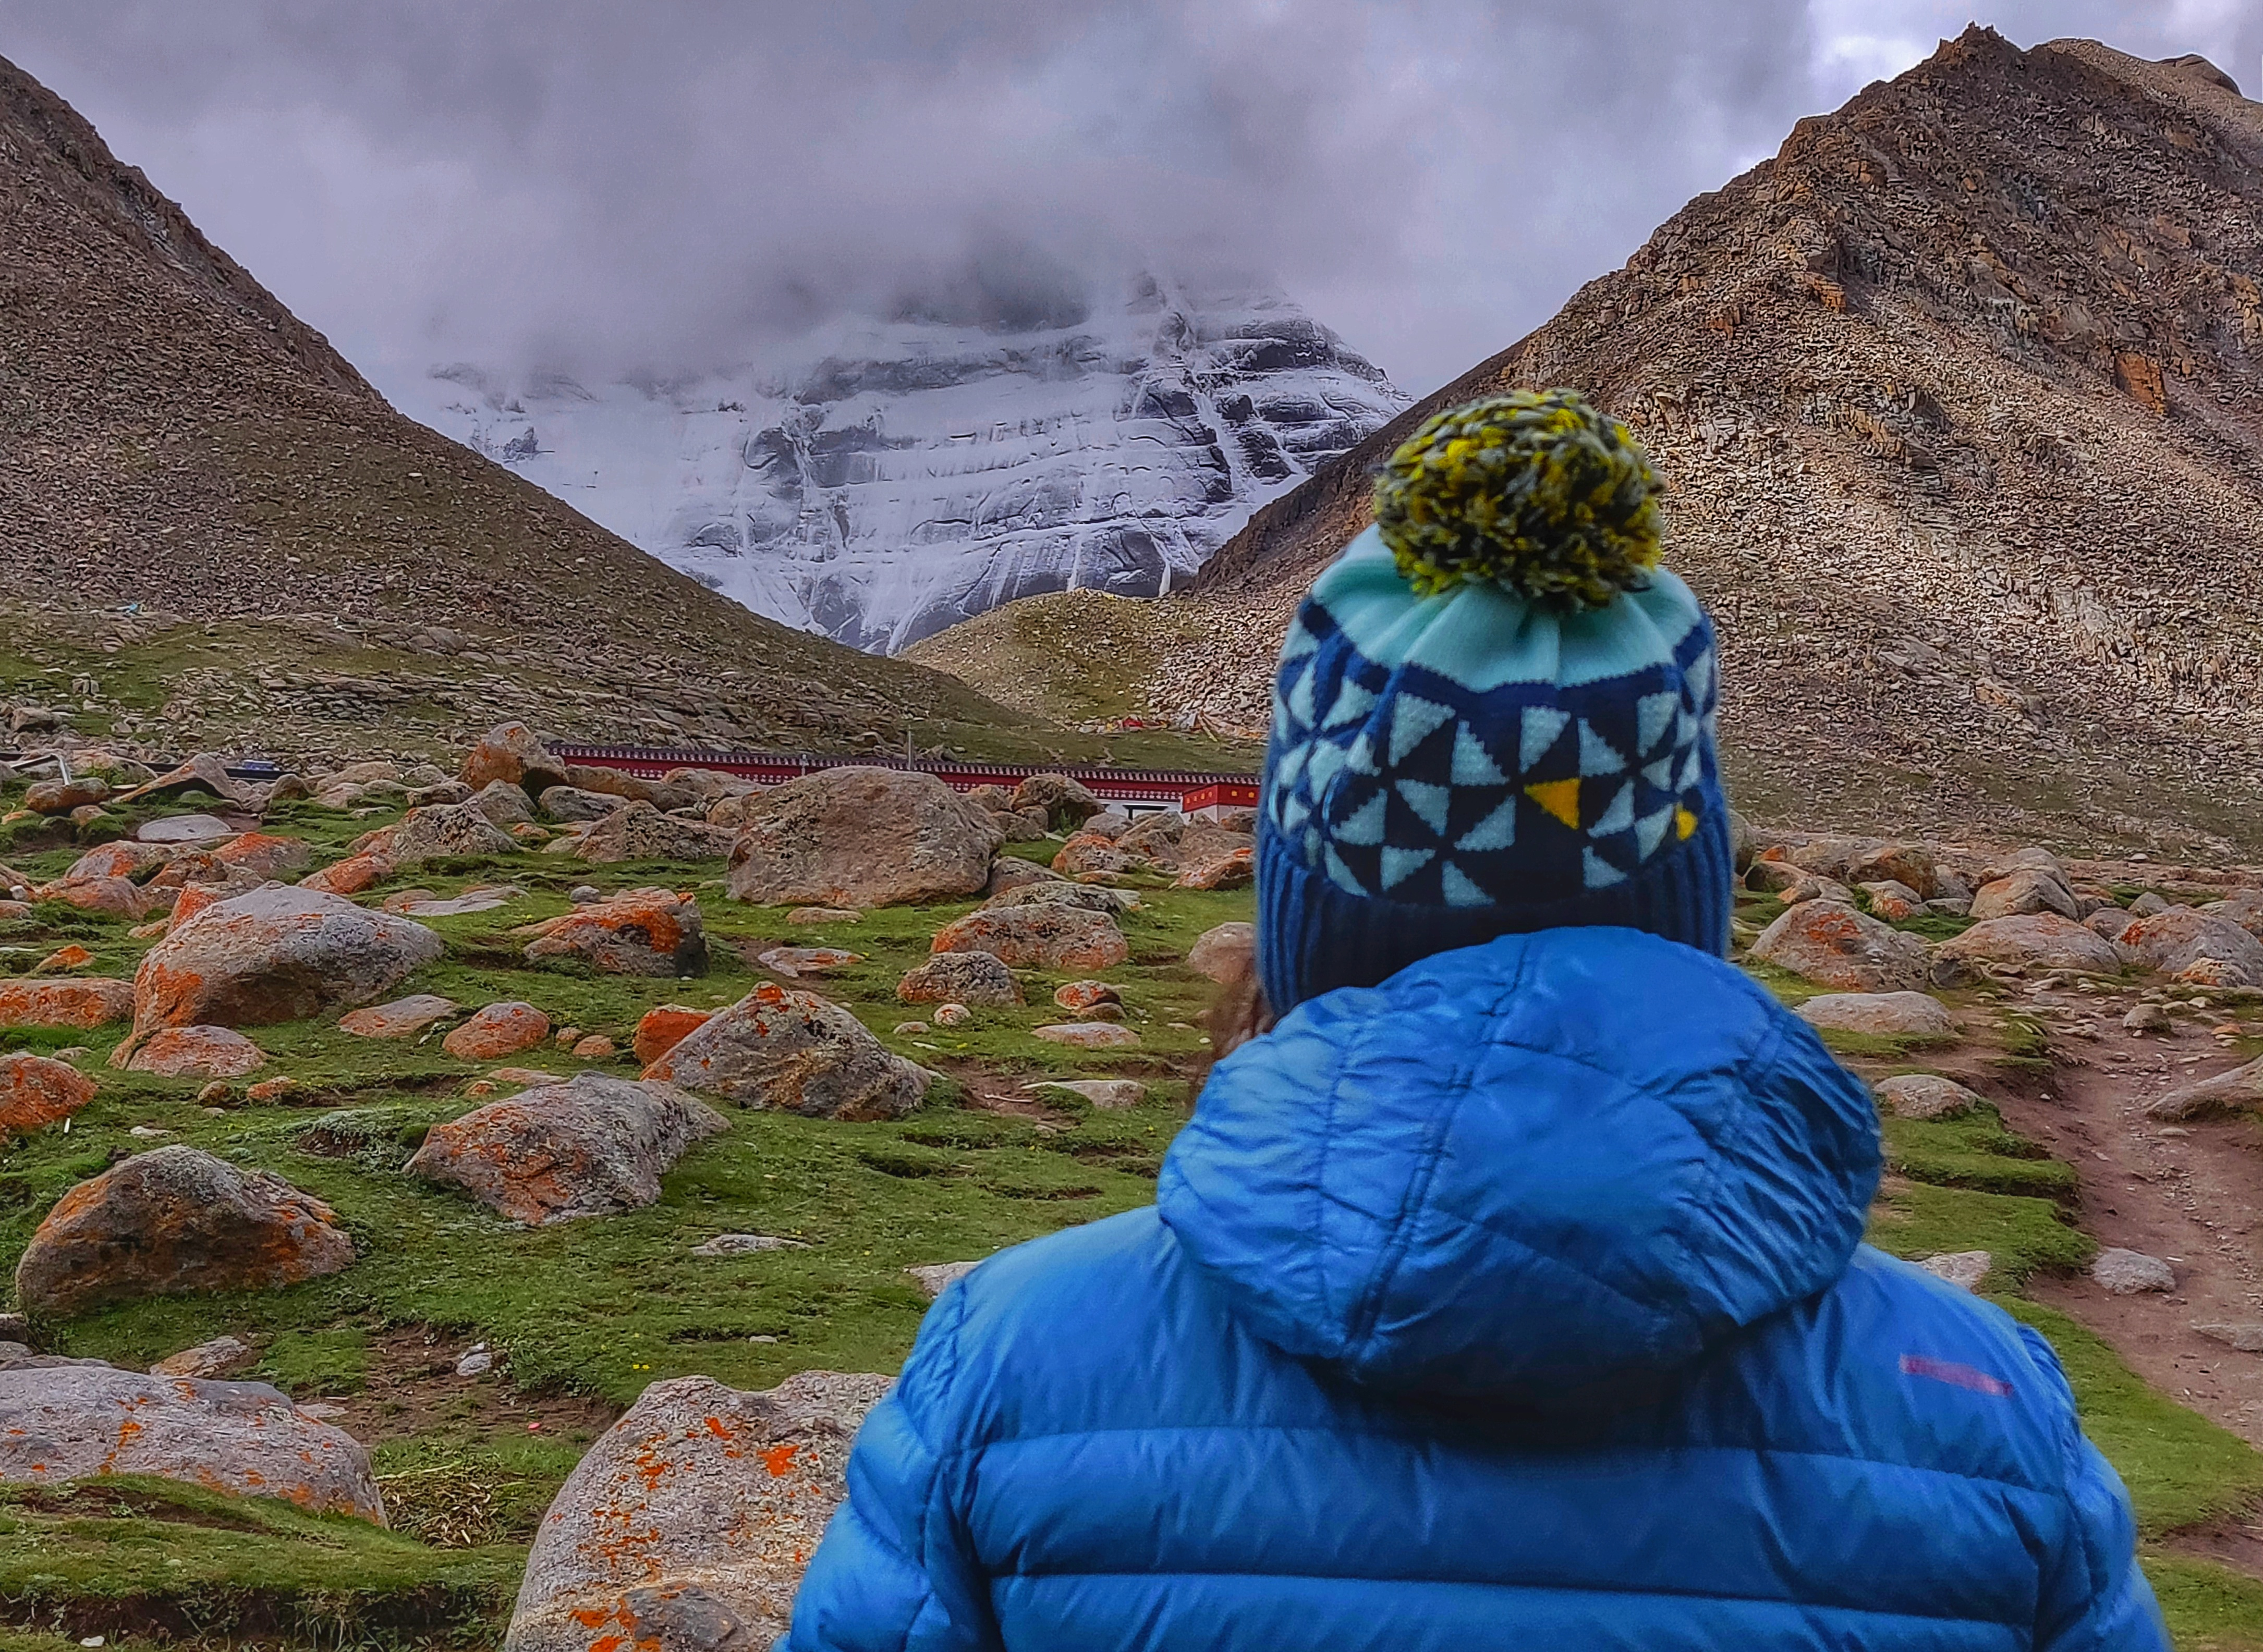 My moment with Mount Kailash